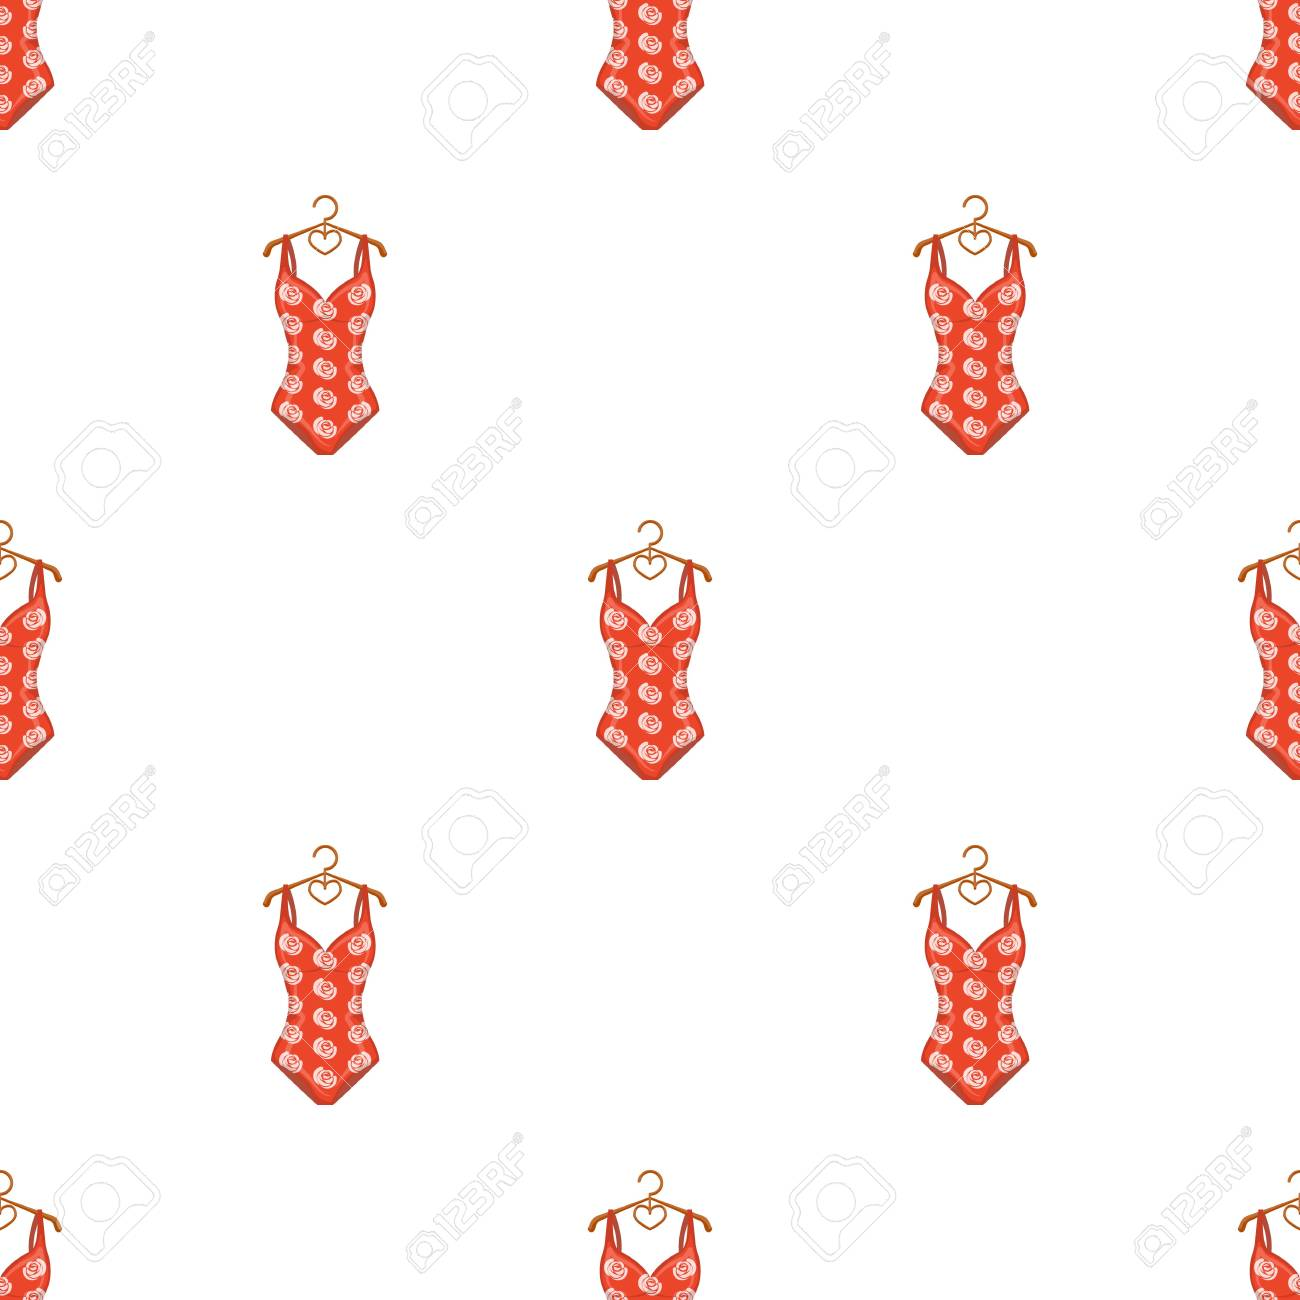 b921e7536c4 Crashing red swimsuit with a print of roses. Beach wear.Swimcuits single  icon in